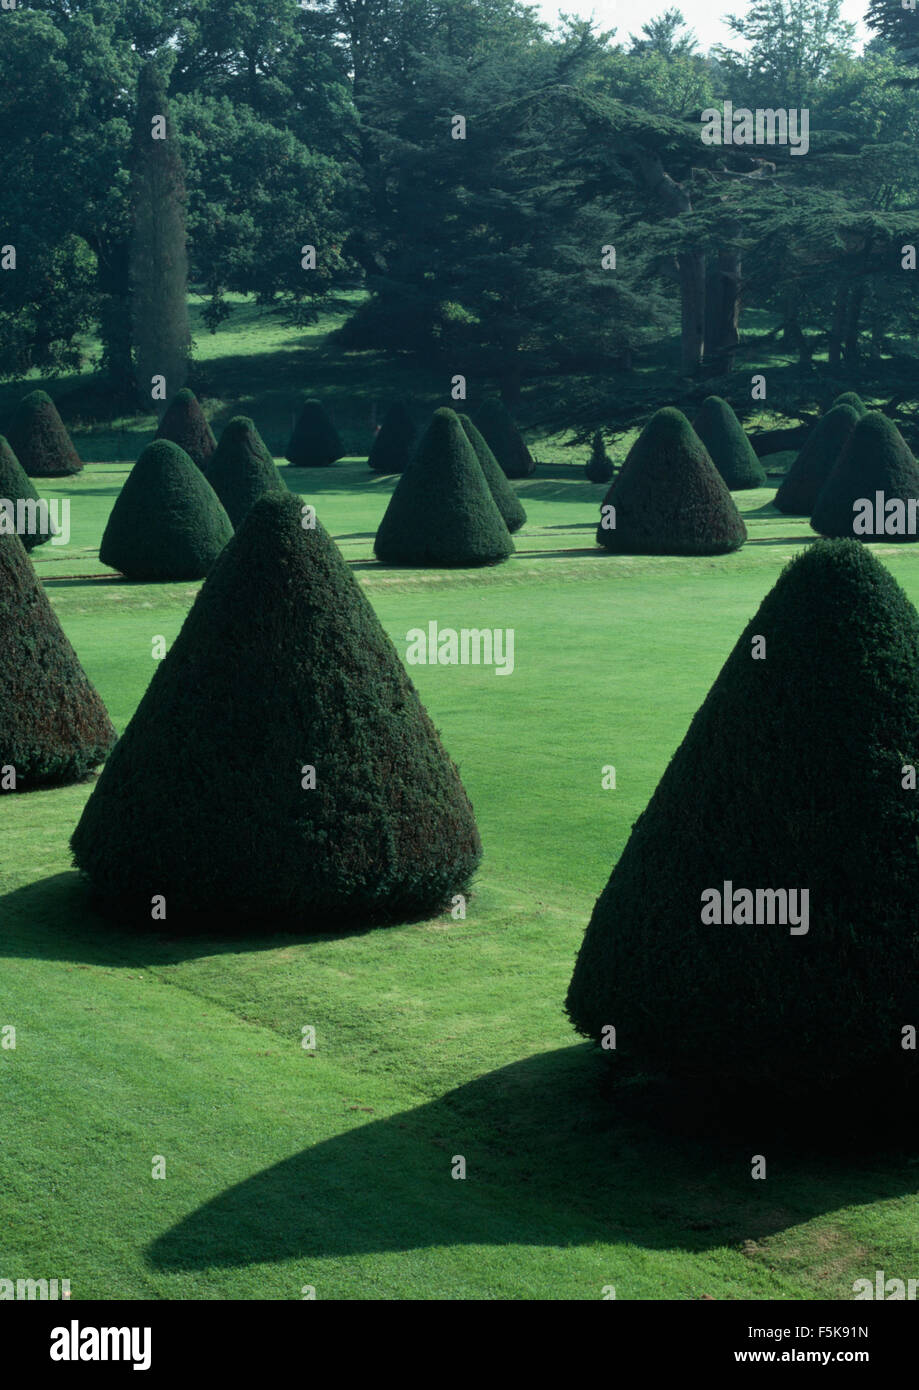 Topiary yew trees clipped into pyramids on lawn in large country garden - Stock Image